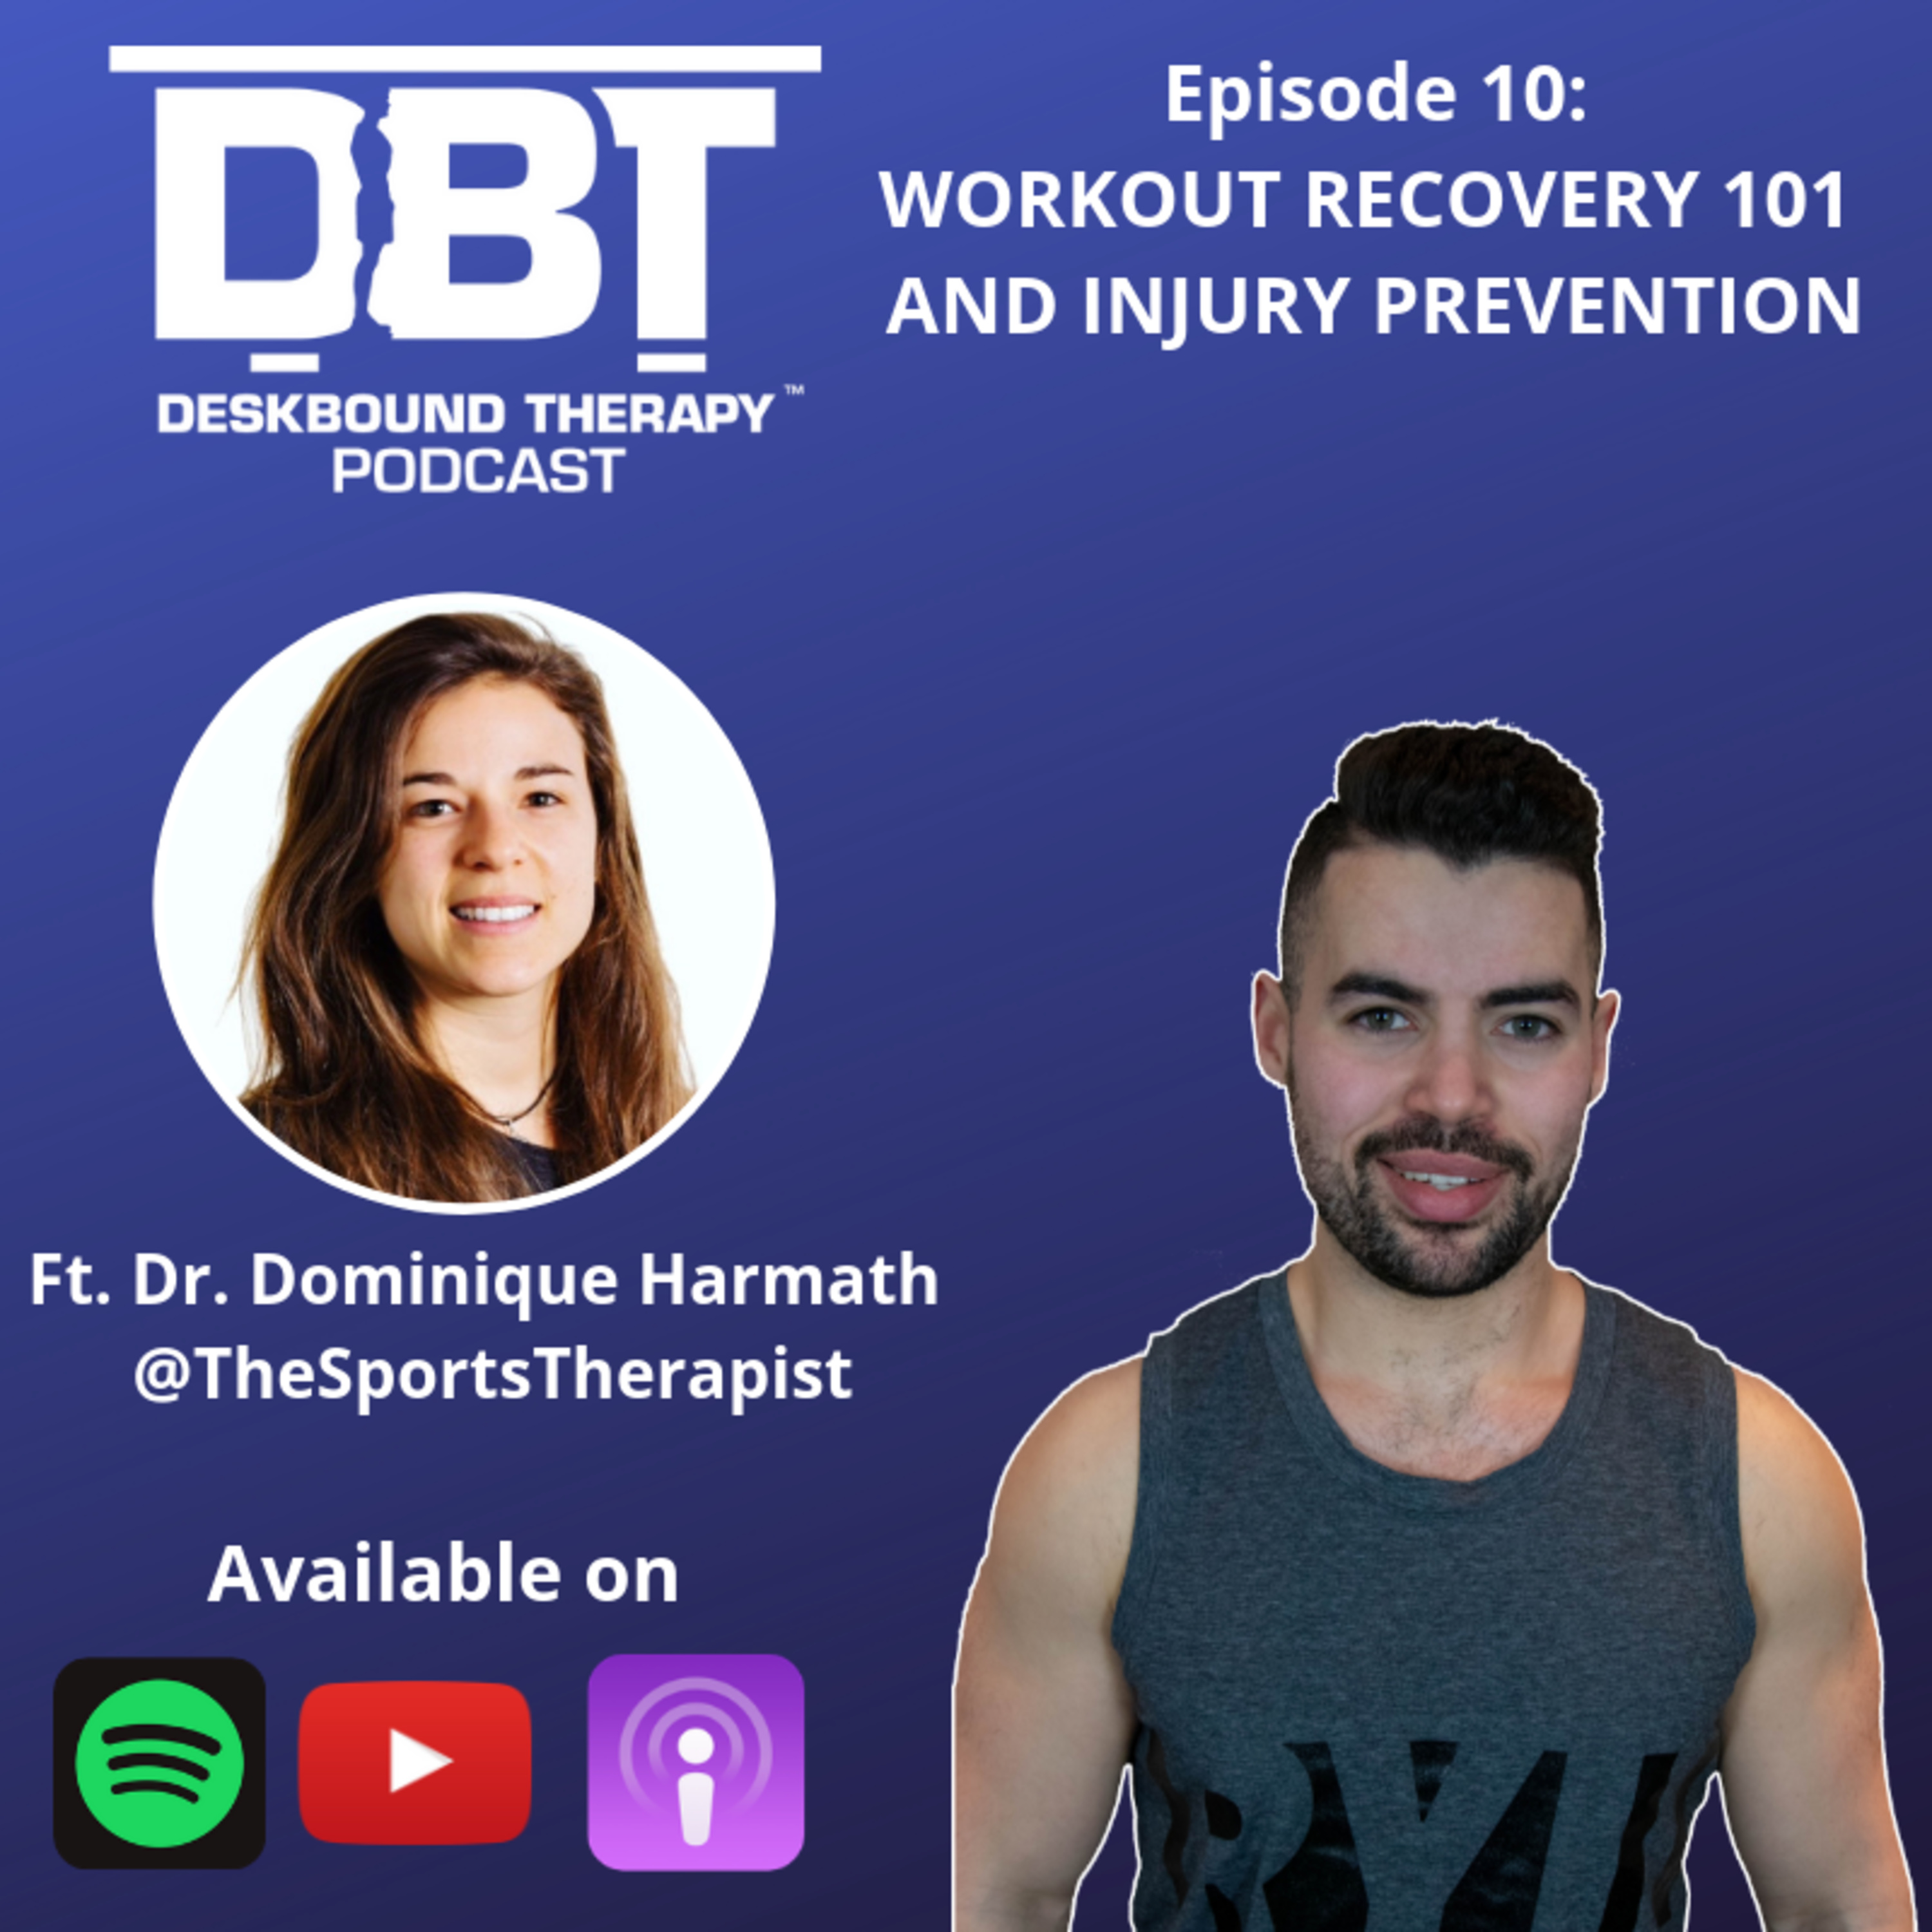 Episode 10 - Workout Recovery 101 and Injury Prevention Ft. Dr. Dominique Harmath